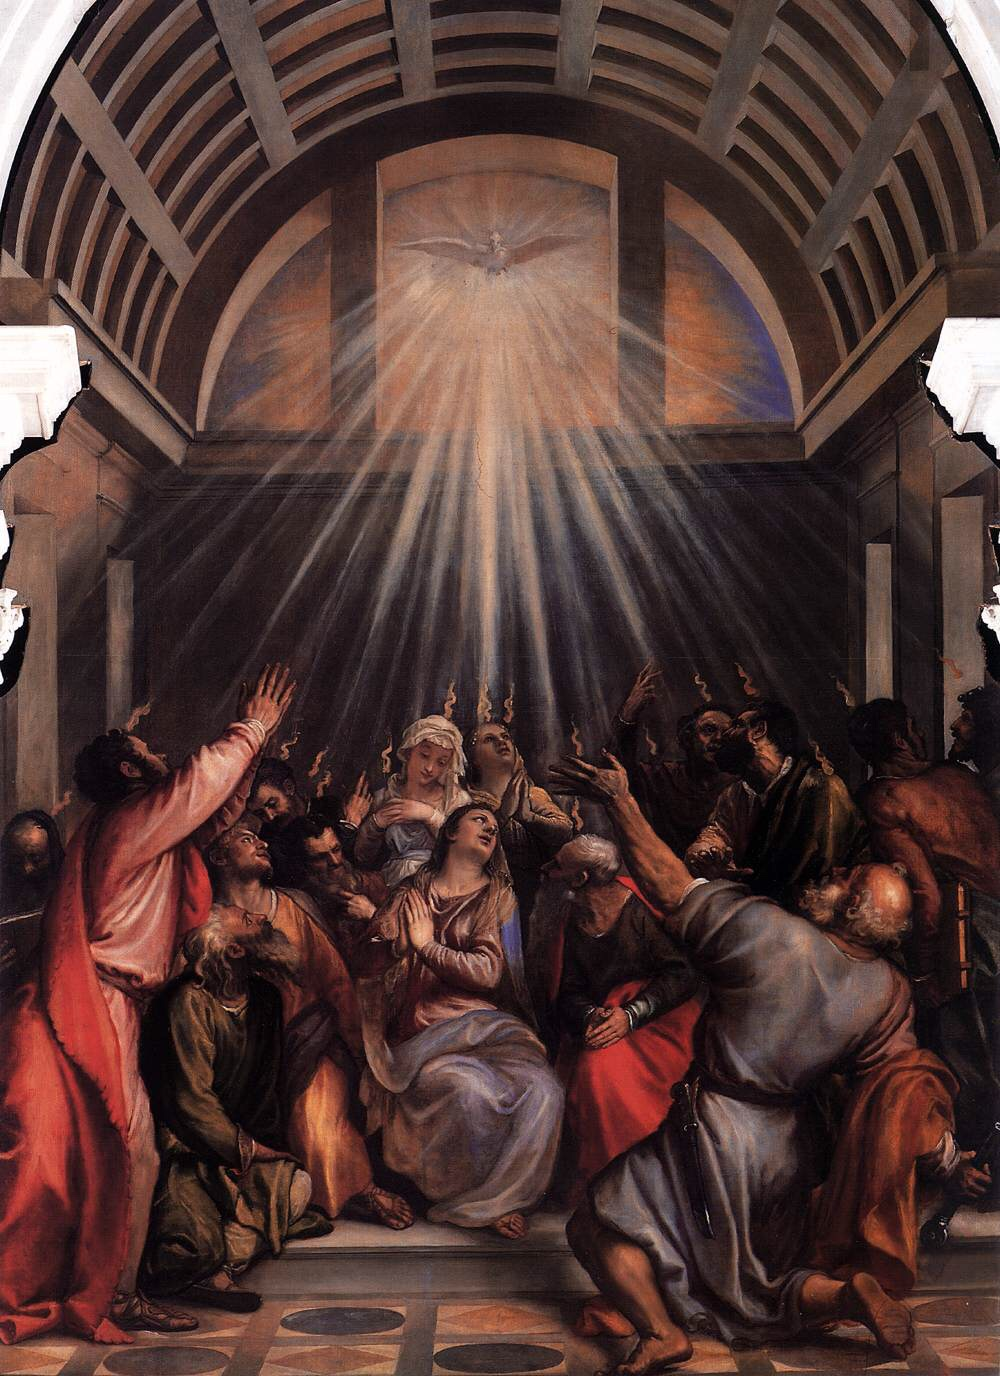 Artist: Titian. Title: The Descent of the Holy Ghost. Date: Circa 1545. This work is in the public domain. {{ PD-US }}